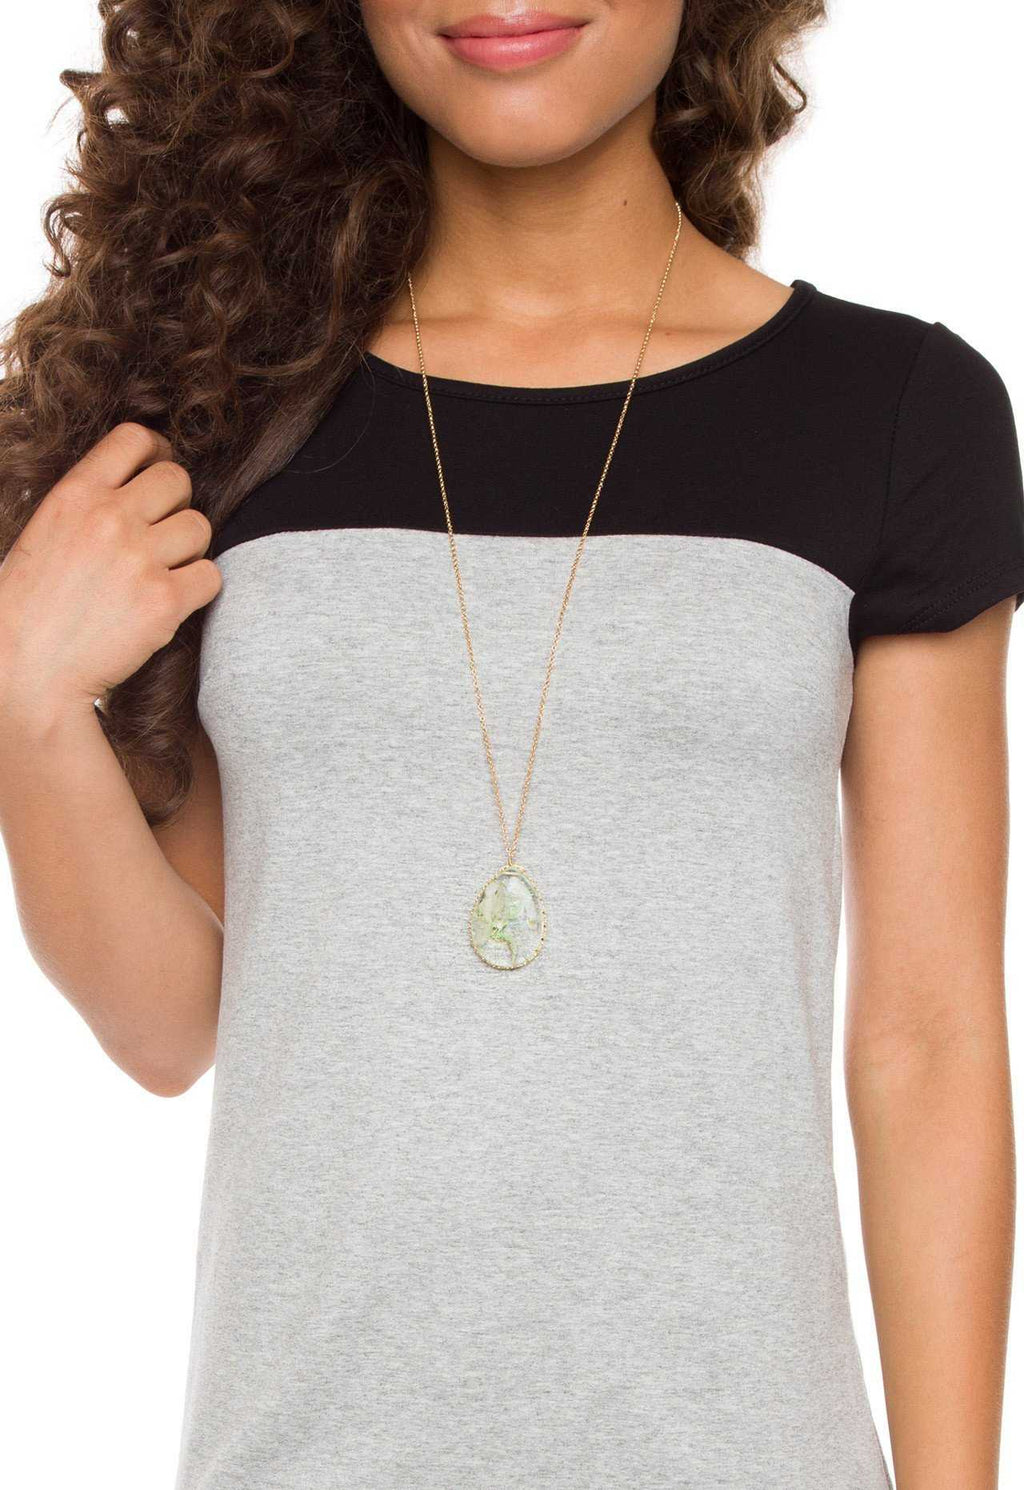 Accessories - Nala Necklace - Mint